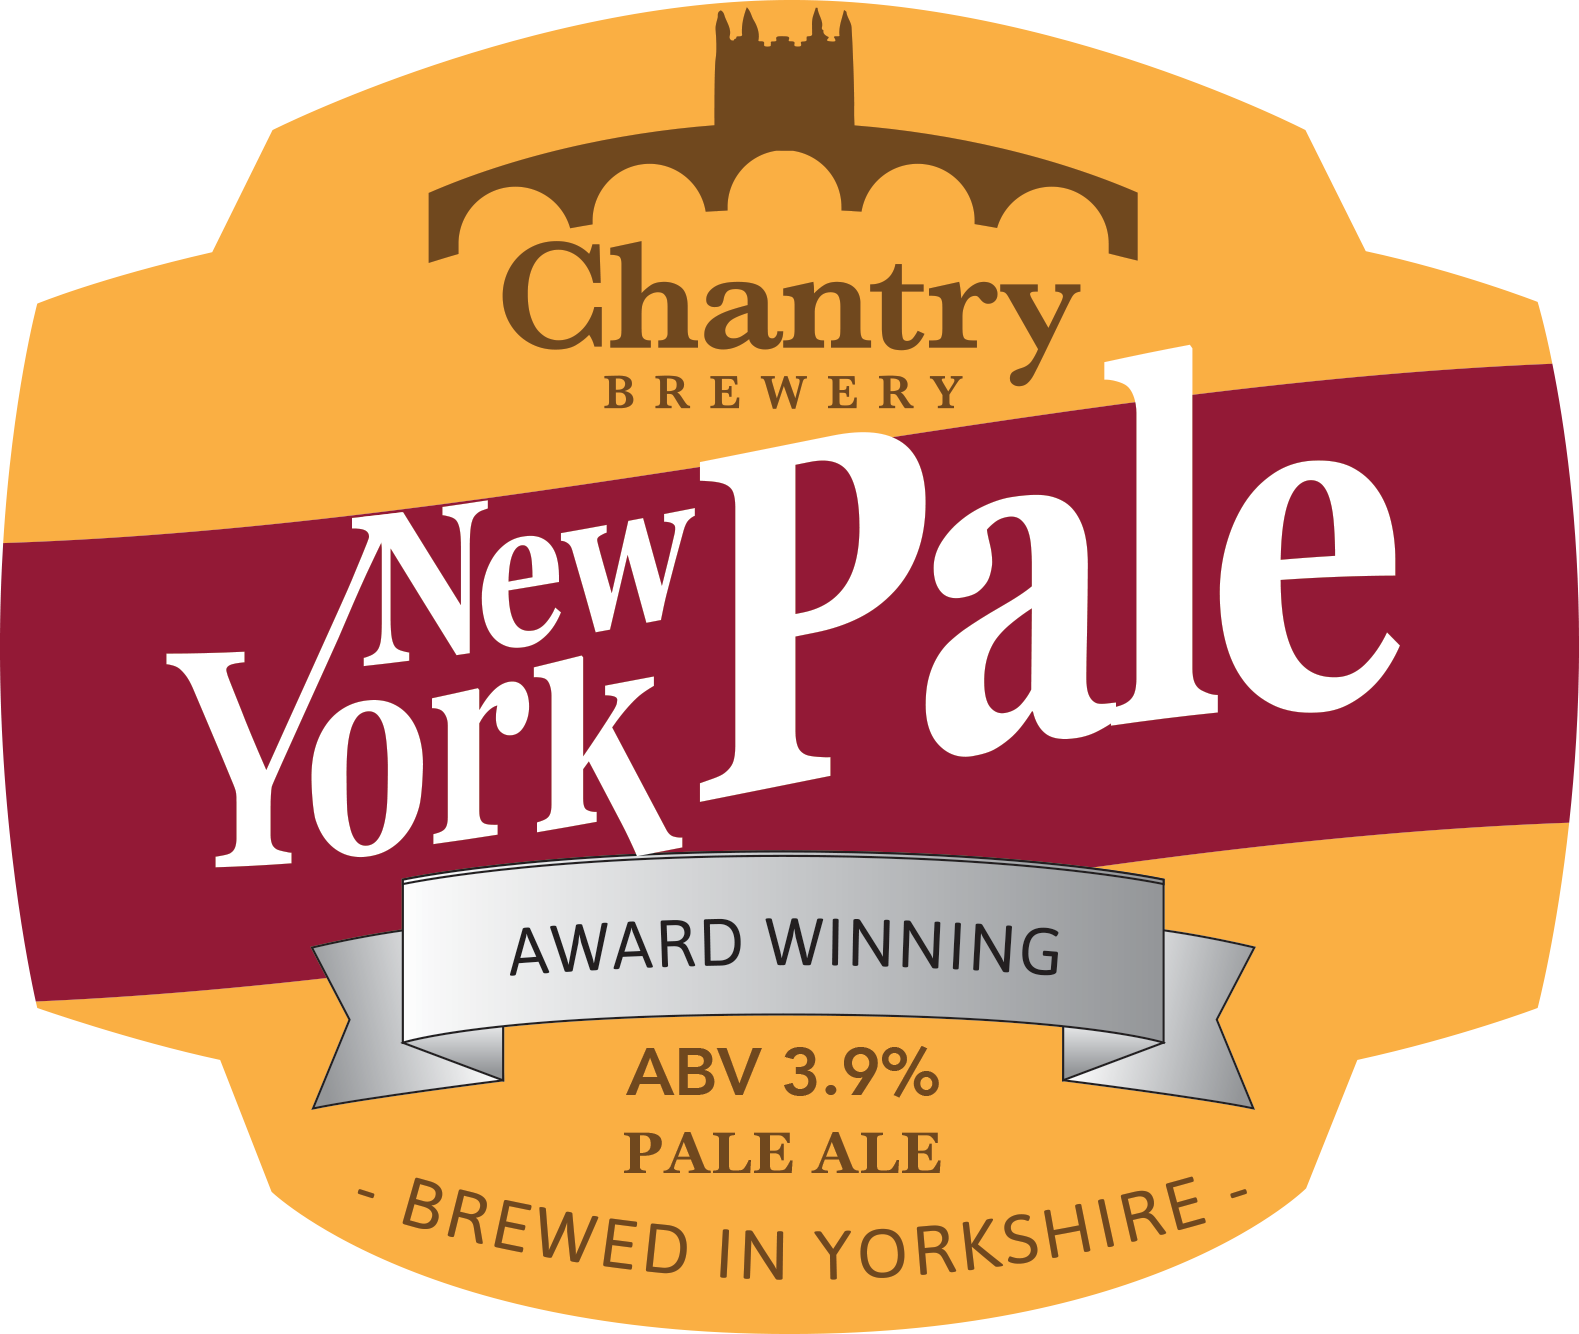 Chantry Brewery New York Pale